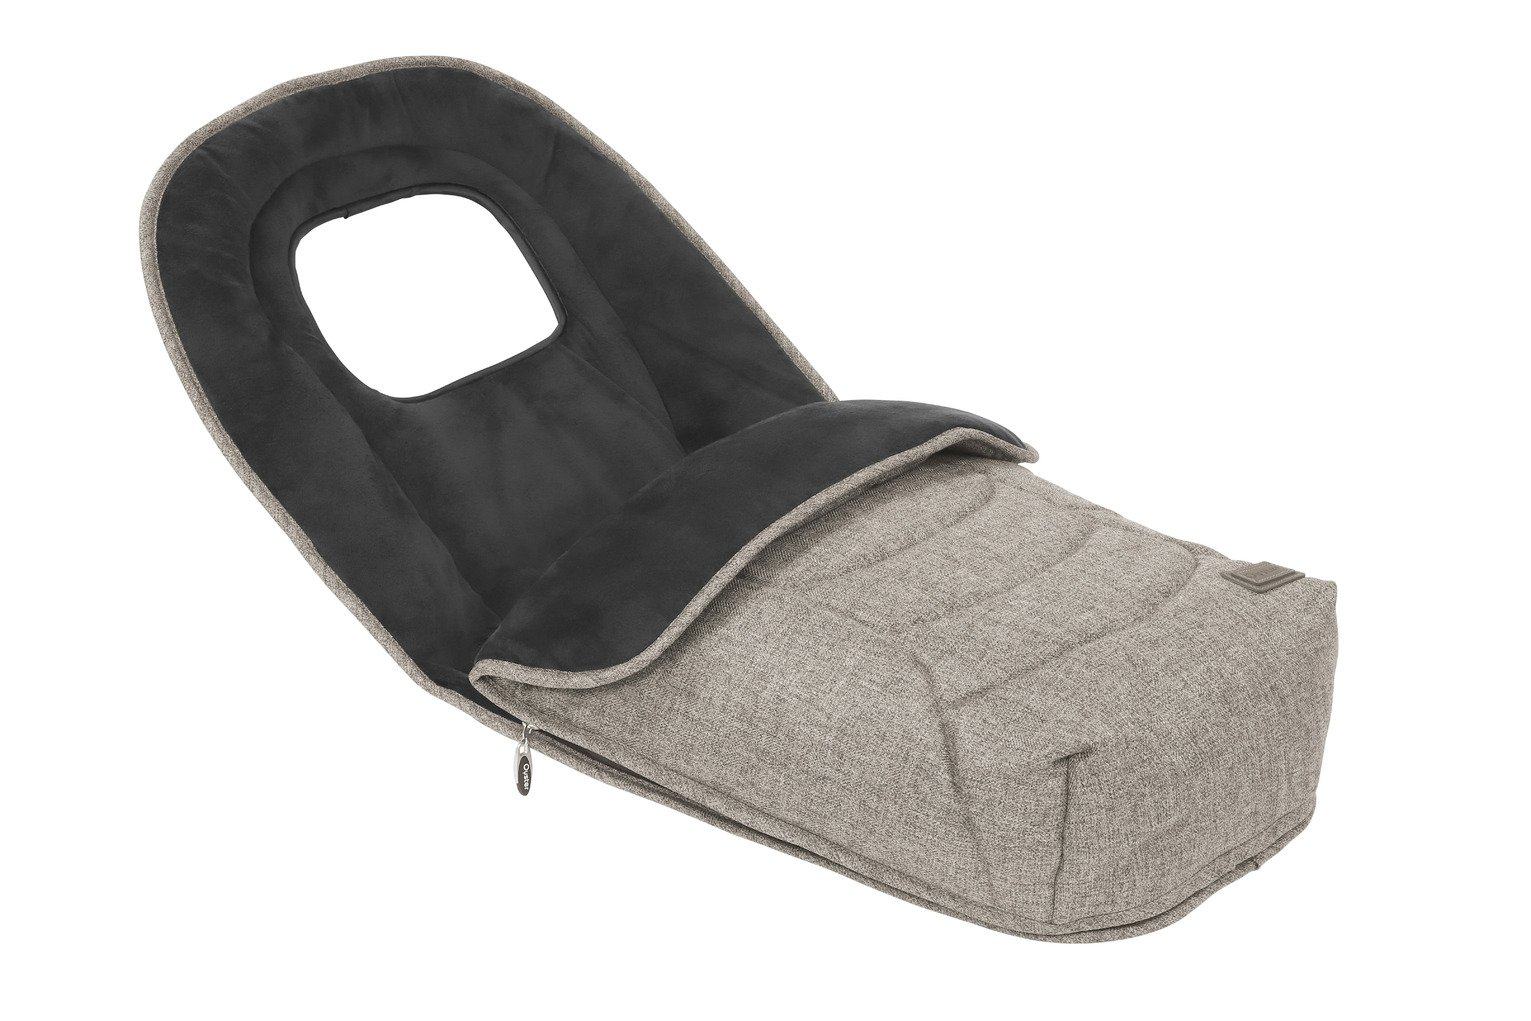 Oyster 3 Footmuff - Pebble